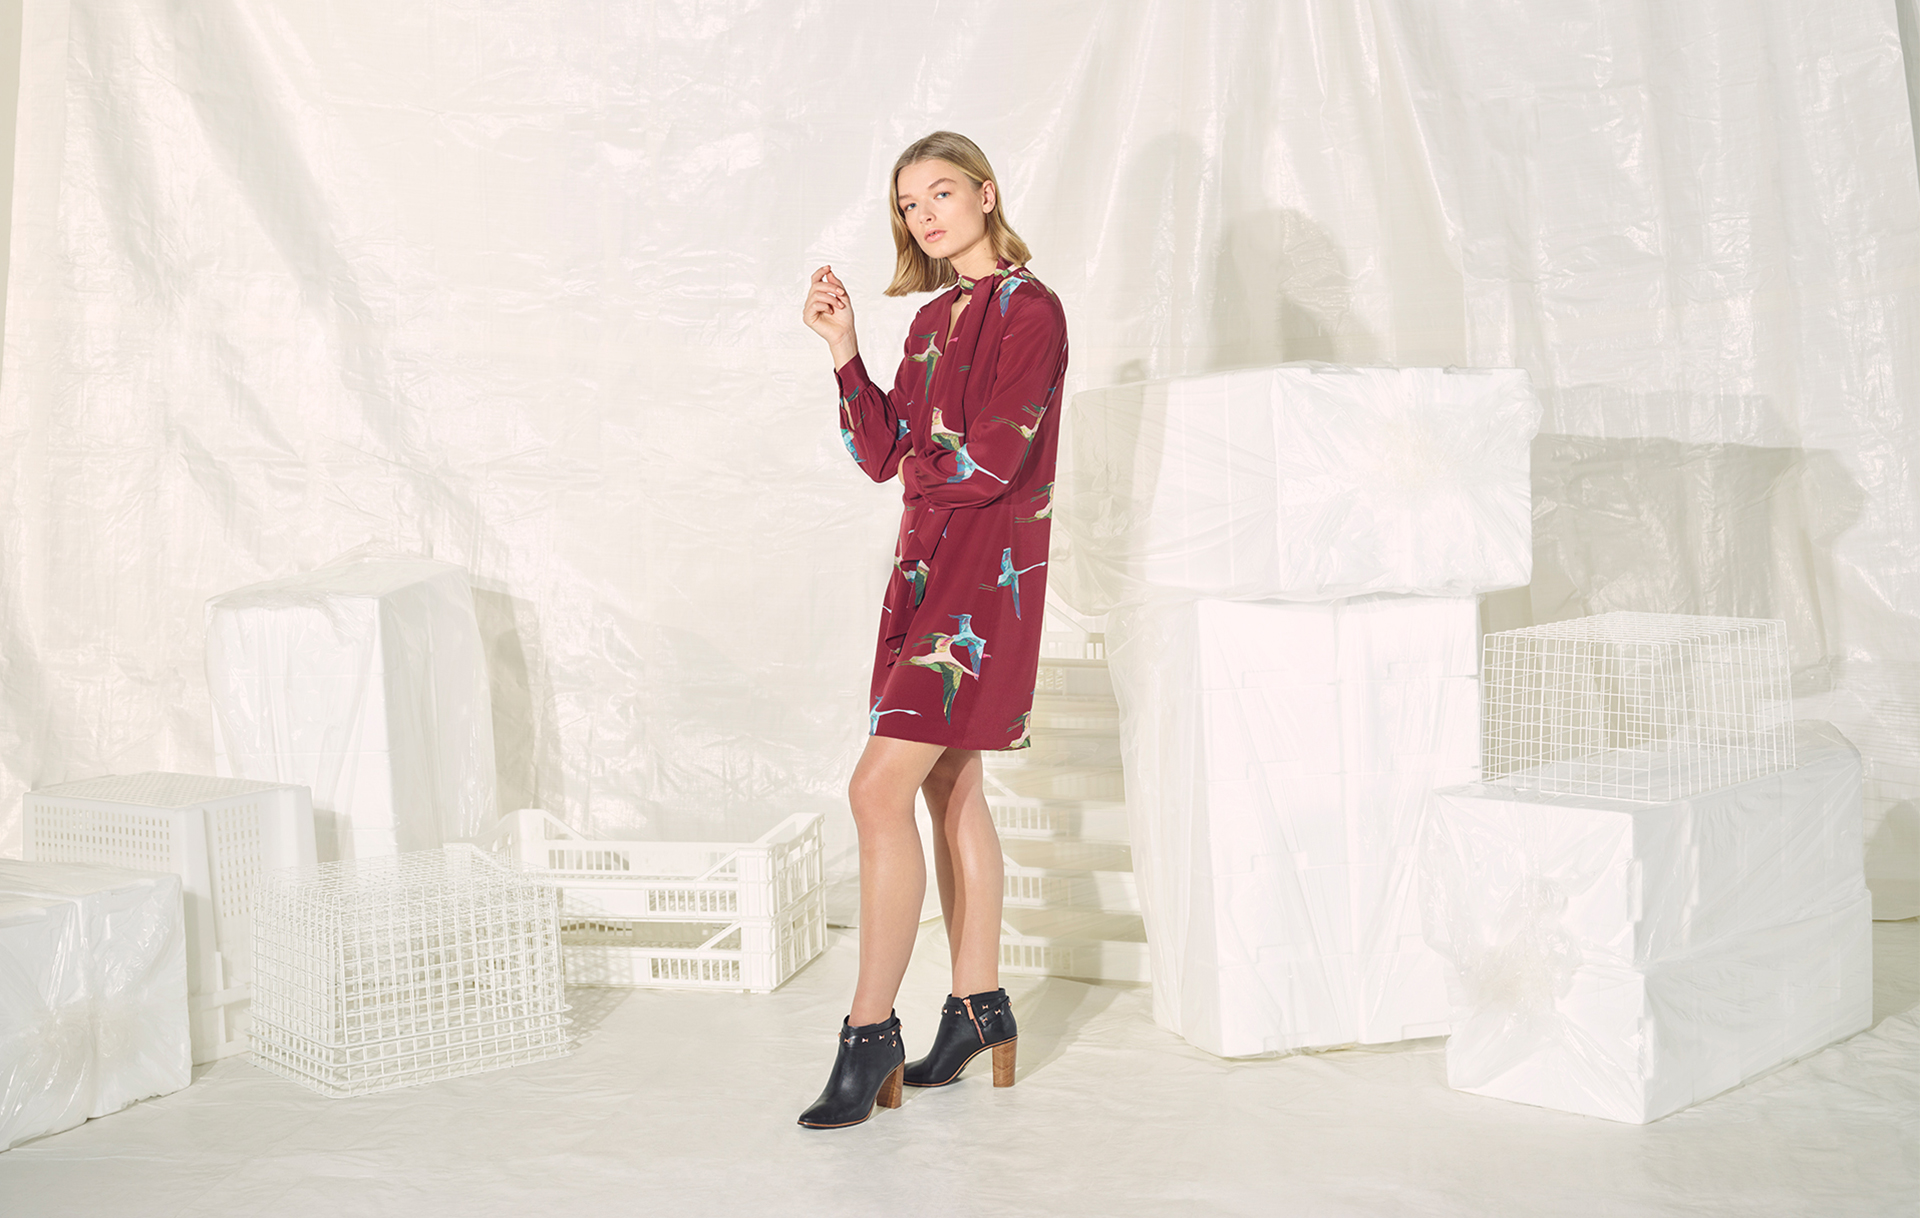 ted_baker_fashion_retouching_post_production_1